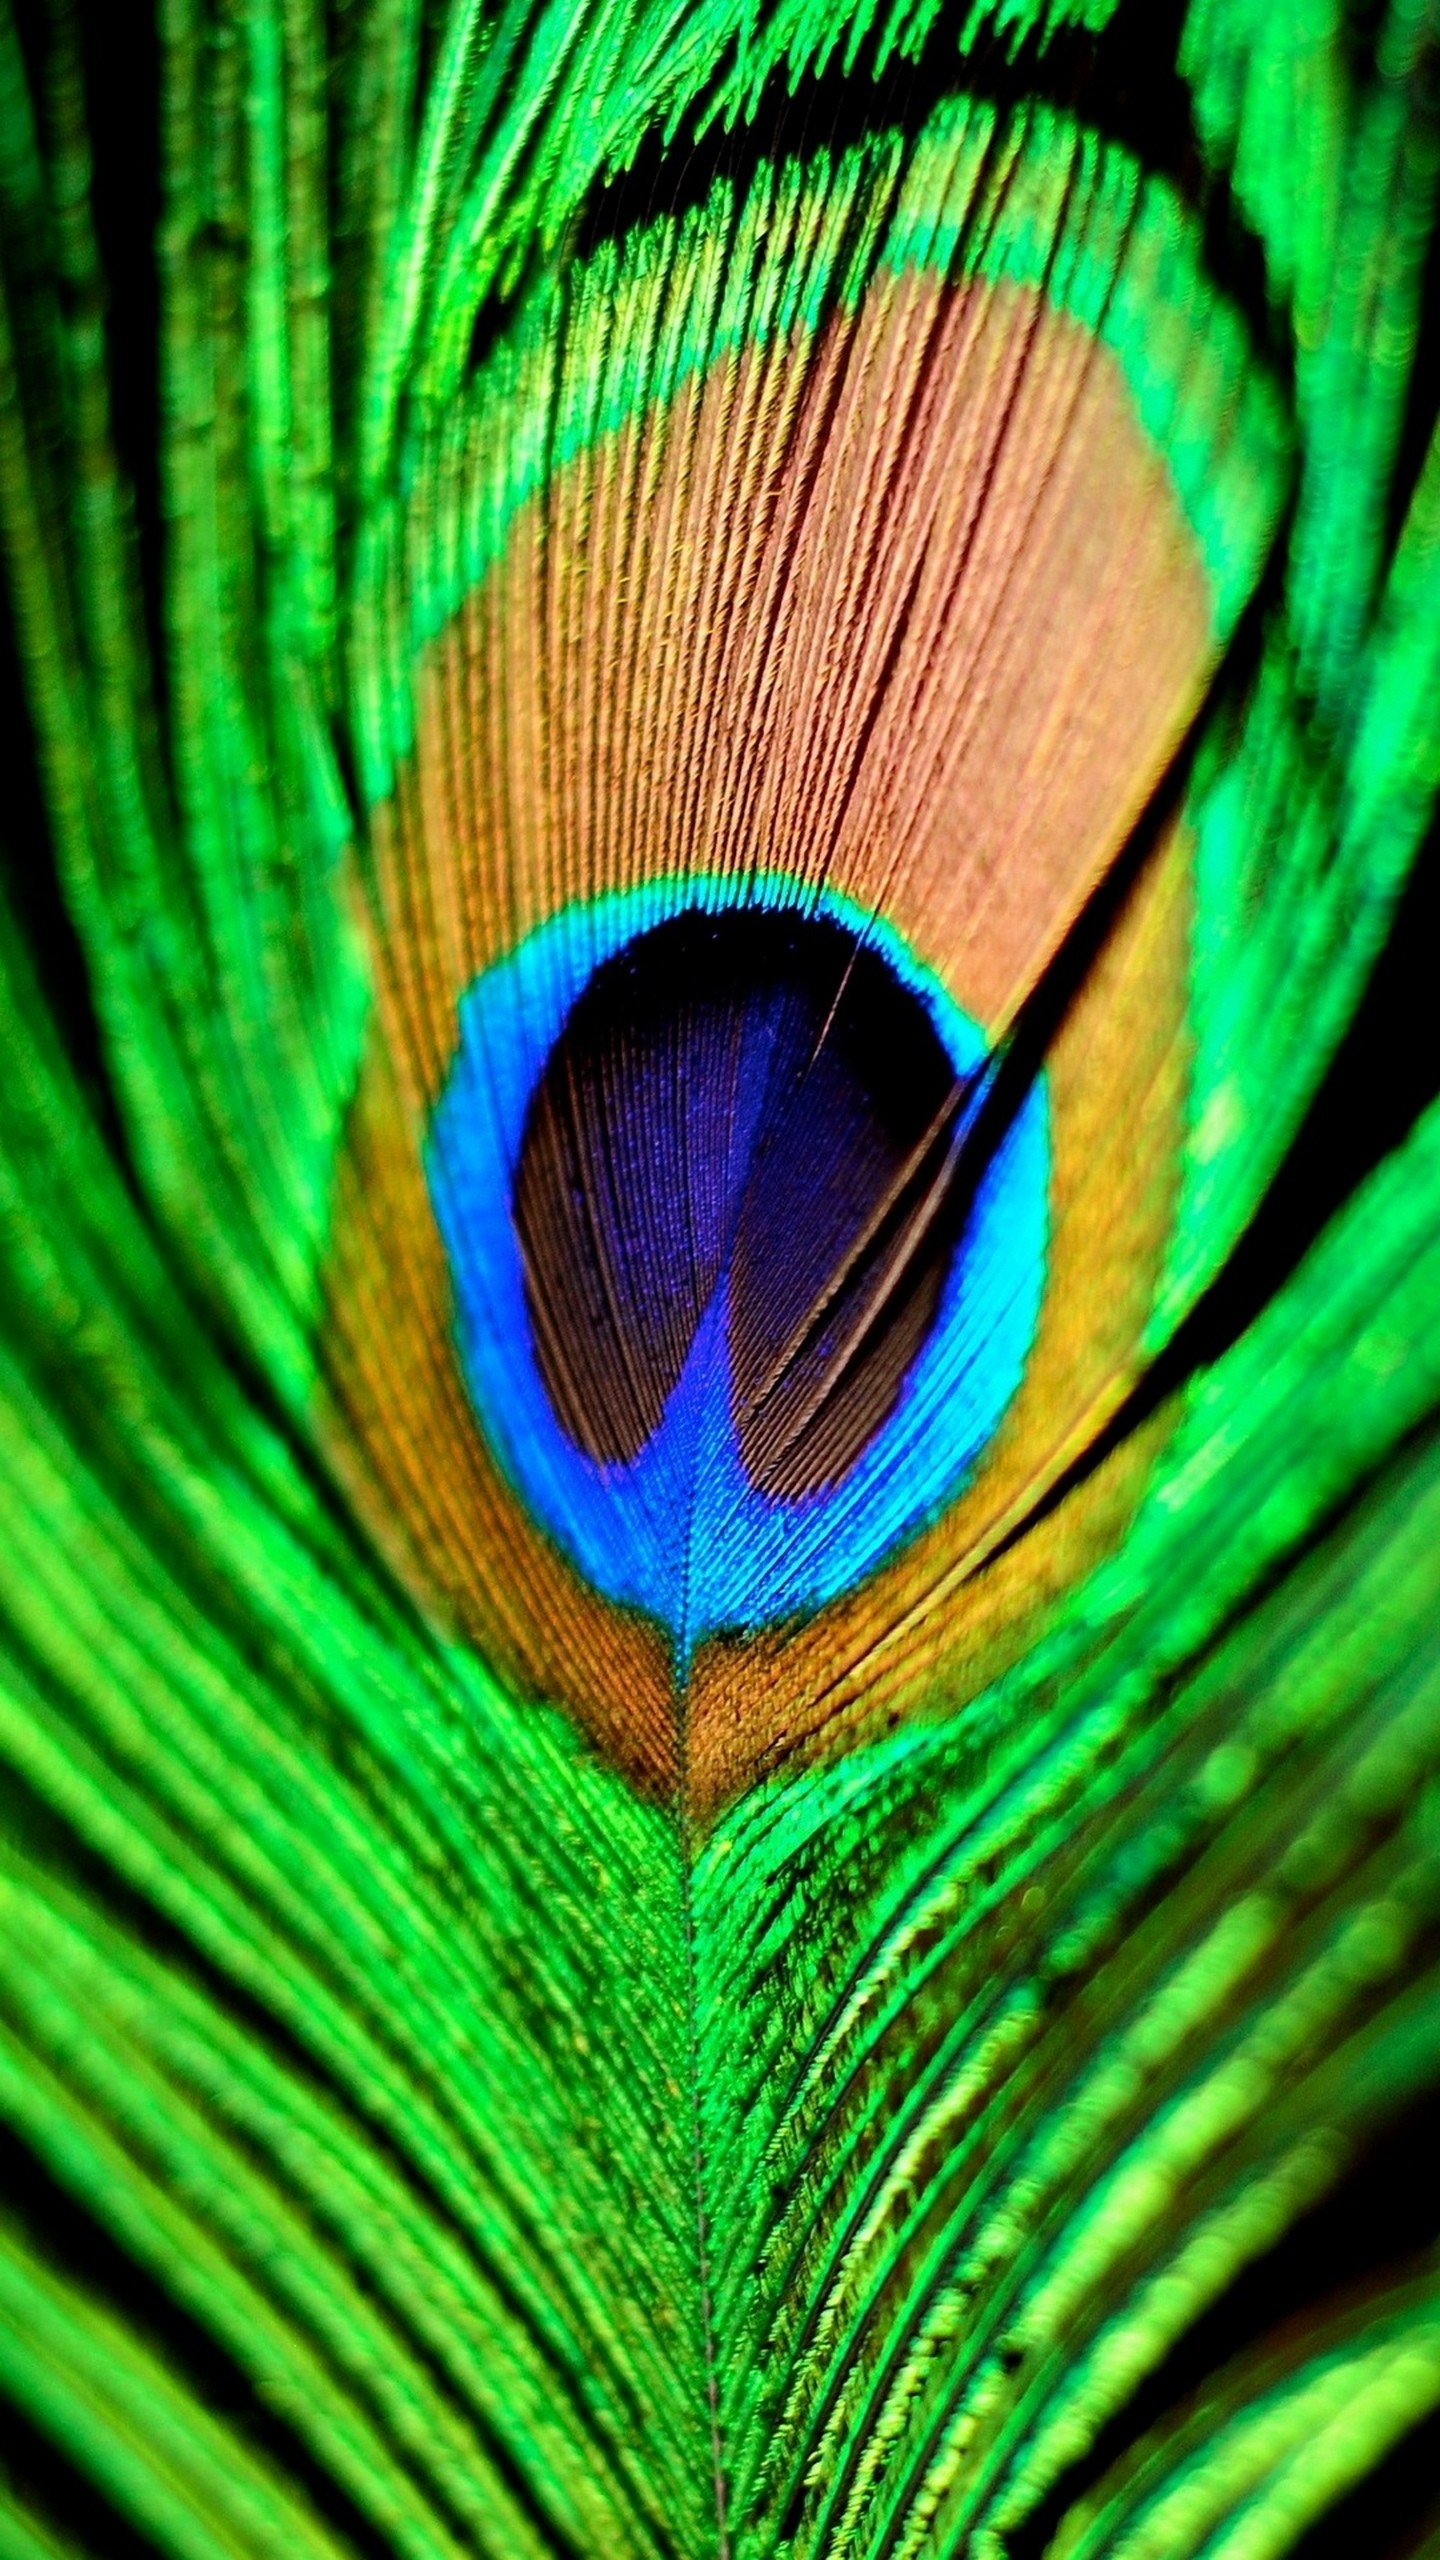 quad hd mobile phone wallpapers peacock feather